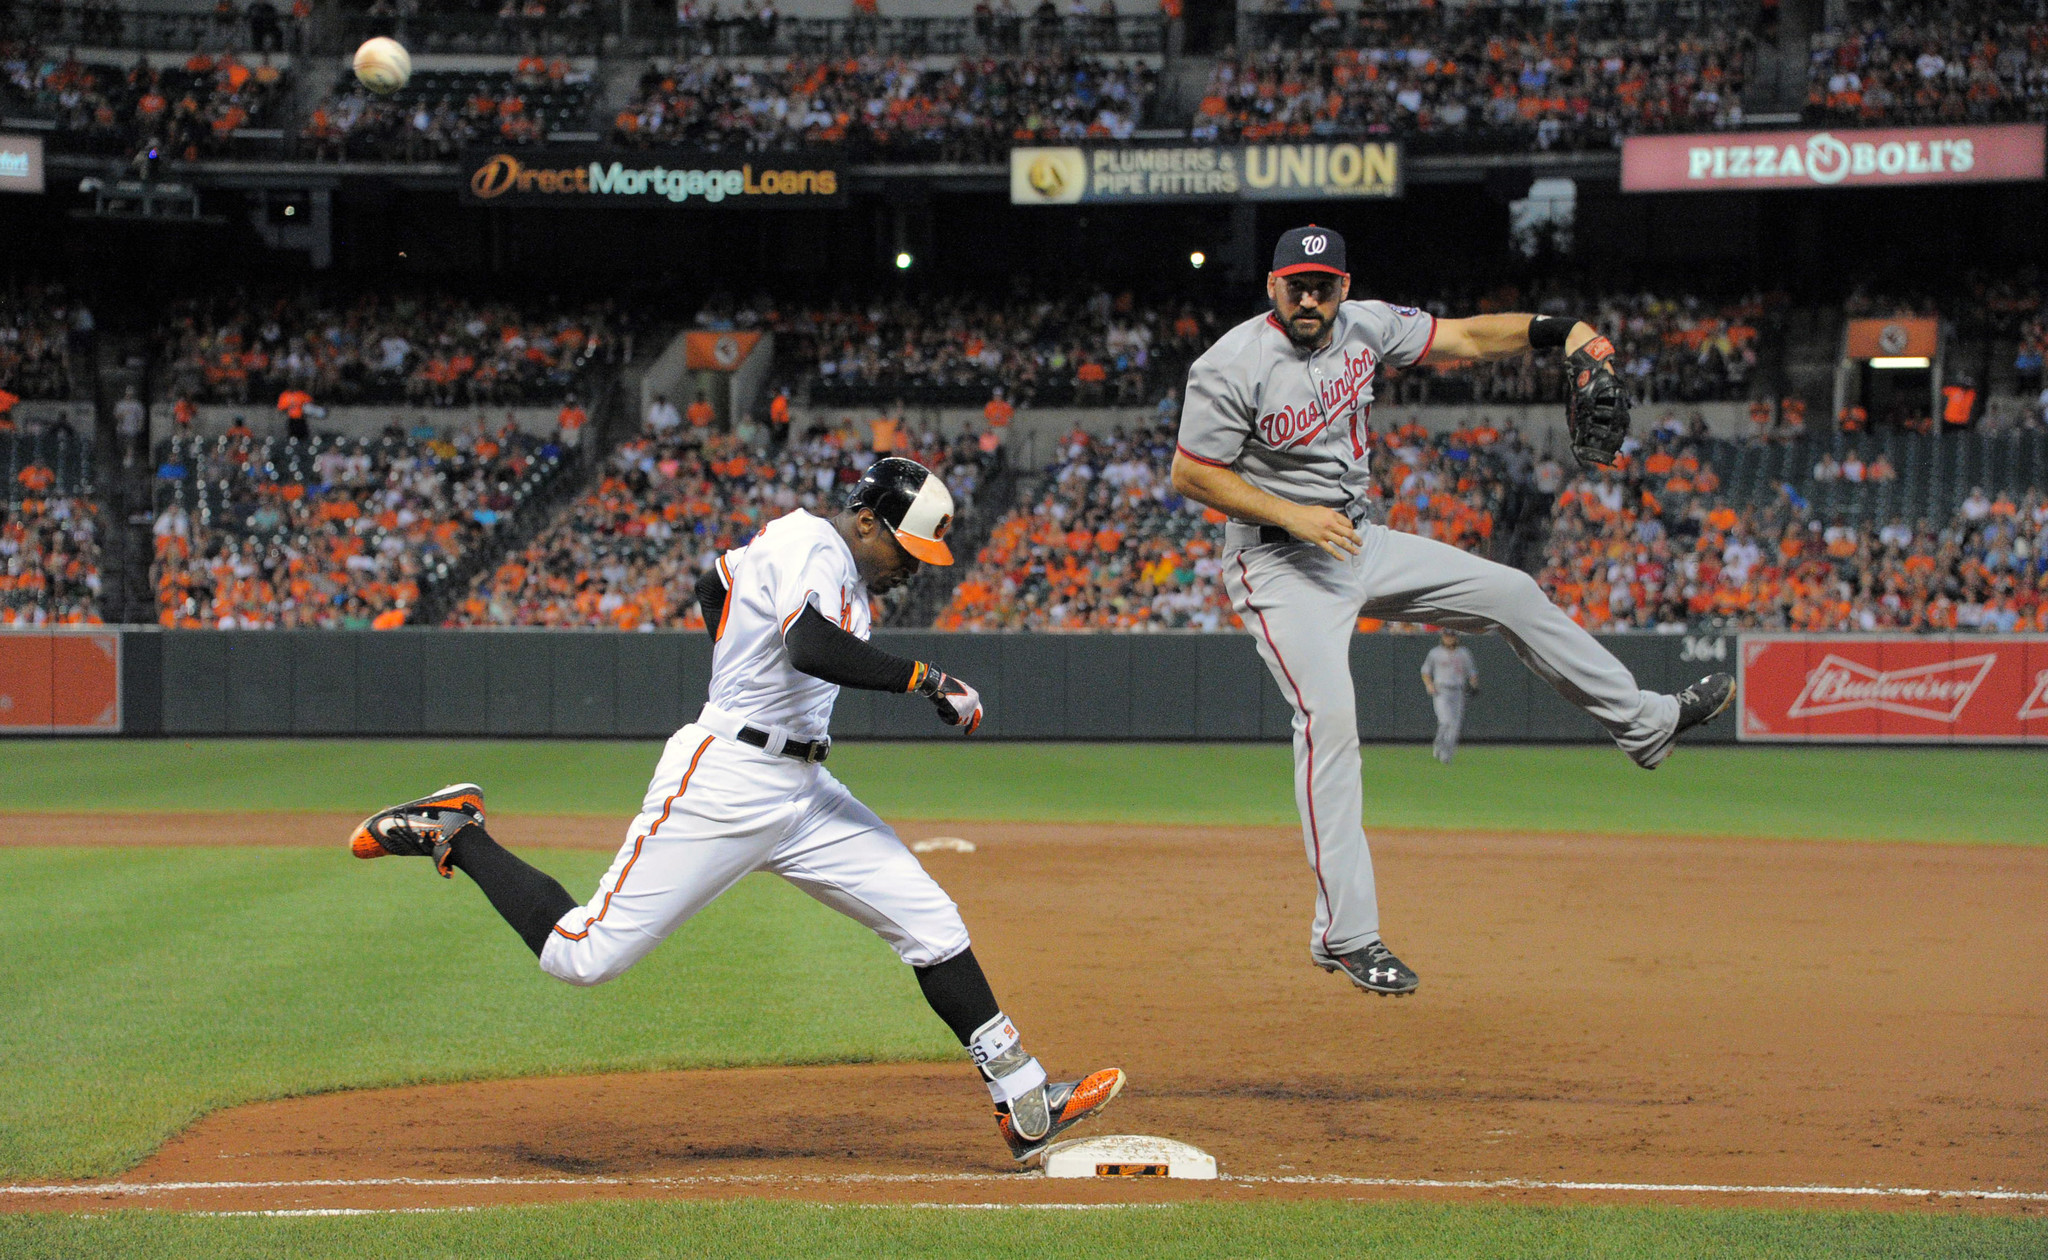 Bal-adam-jones-hints-at-change-in-orioles-batting-approach-down-stretch-run-after-hit-barrage-of-nats-20160824